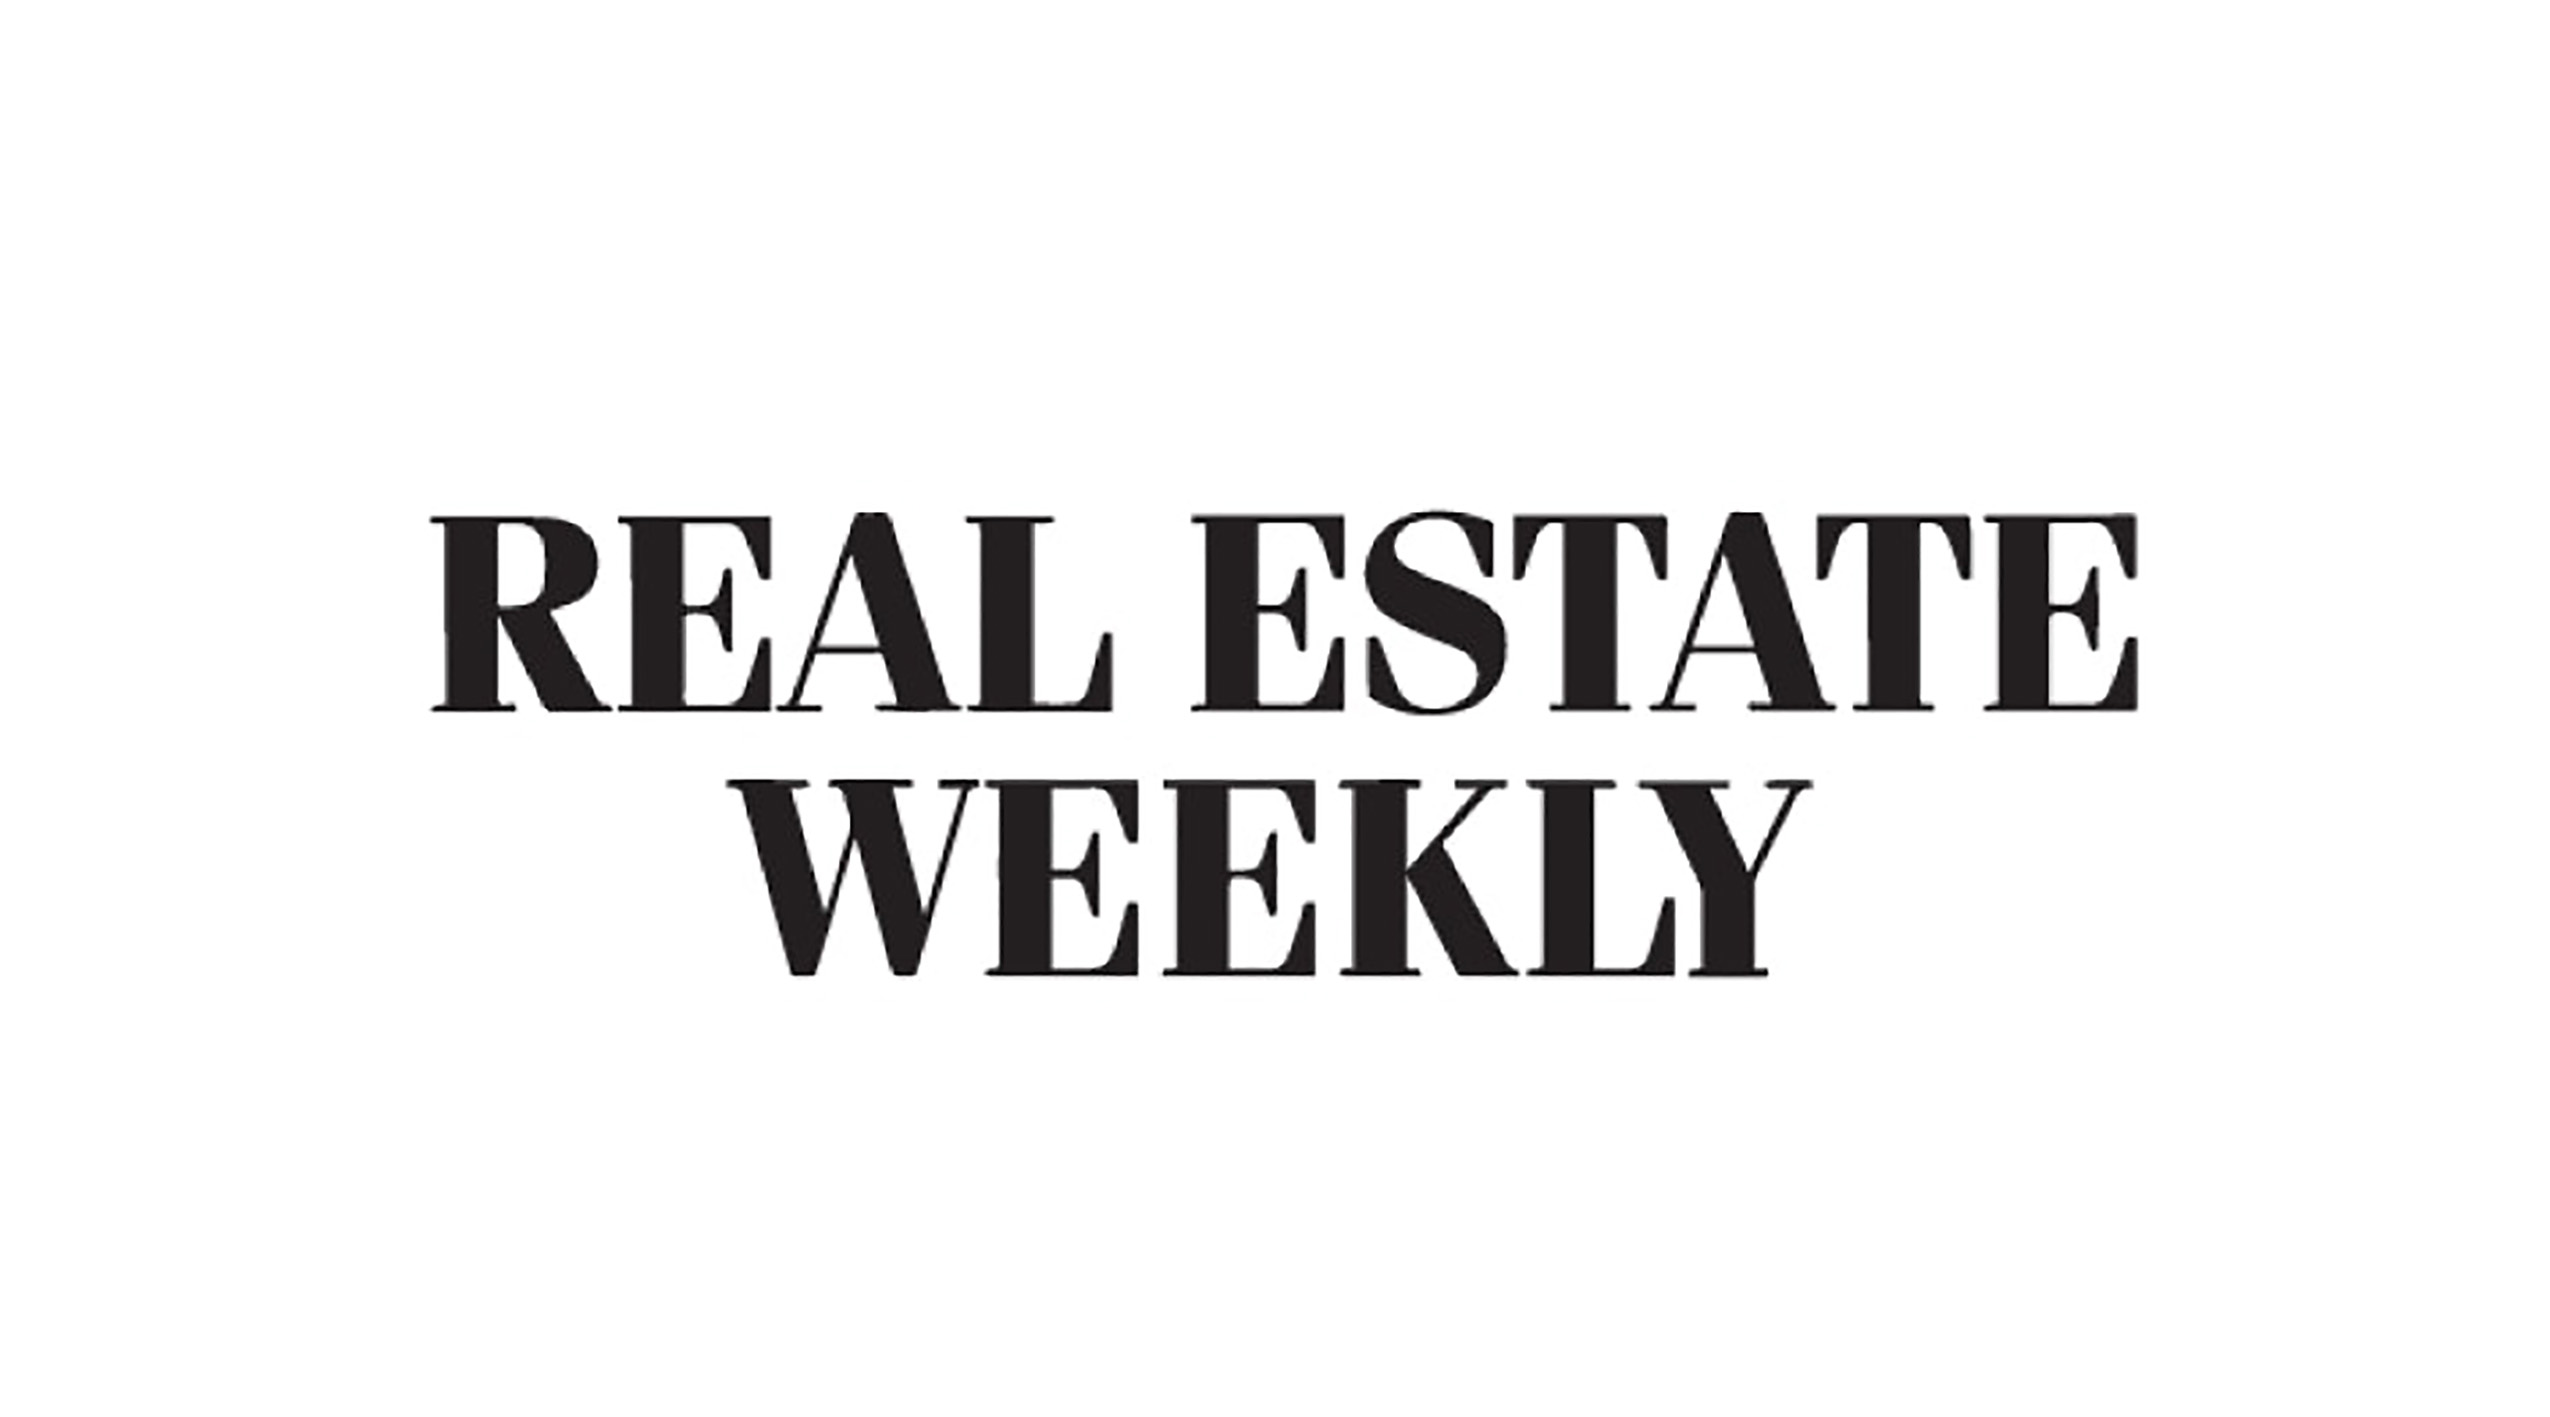 real estate wekly